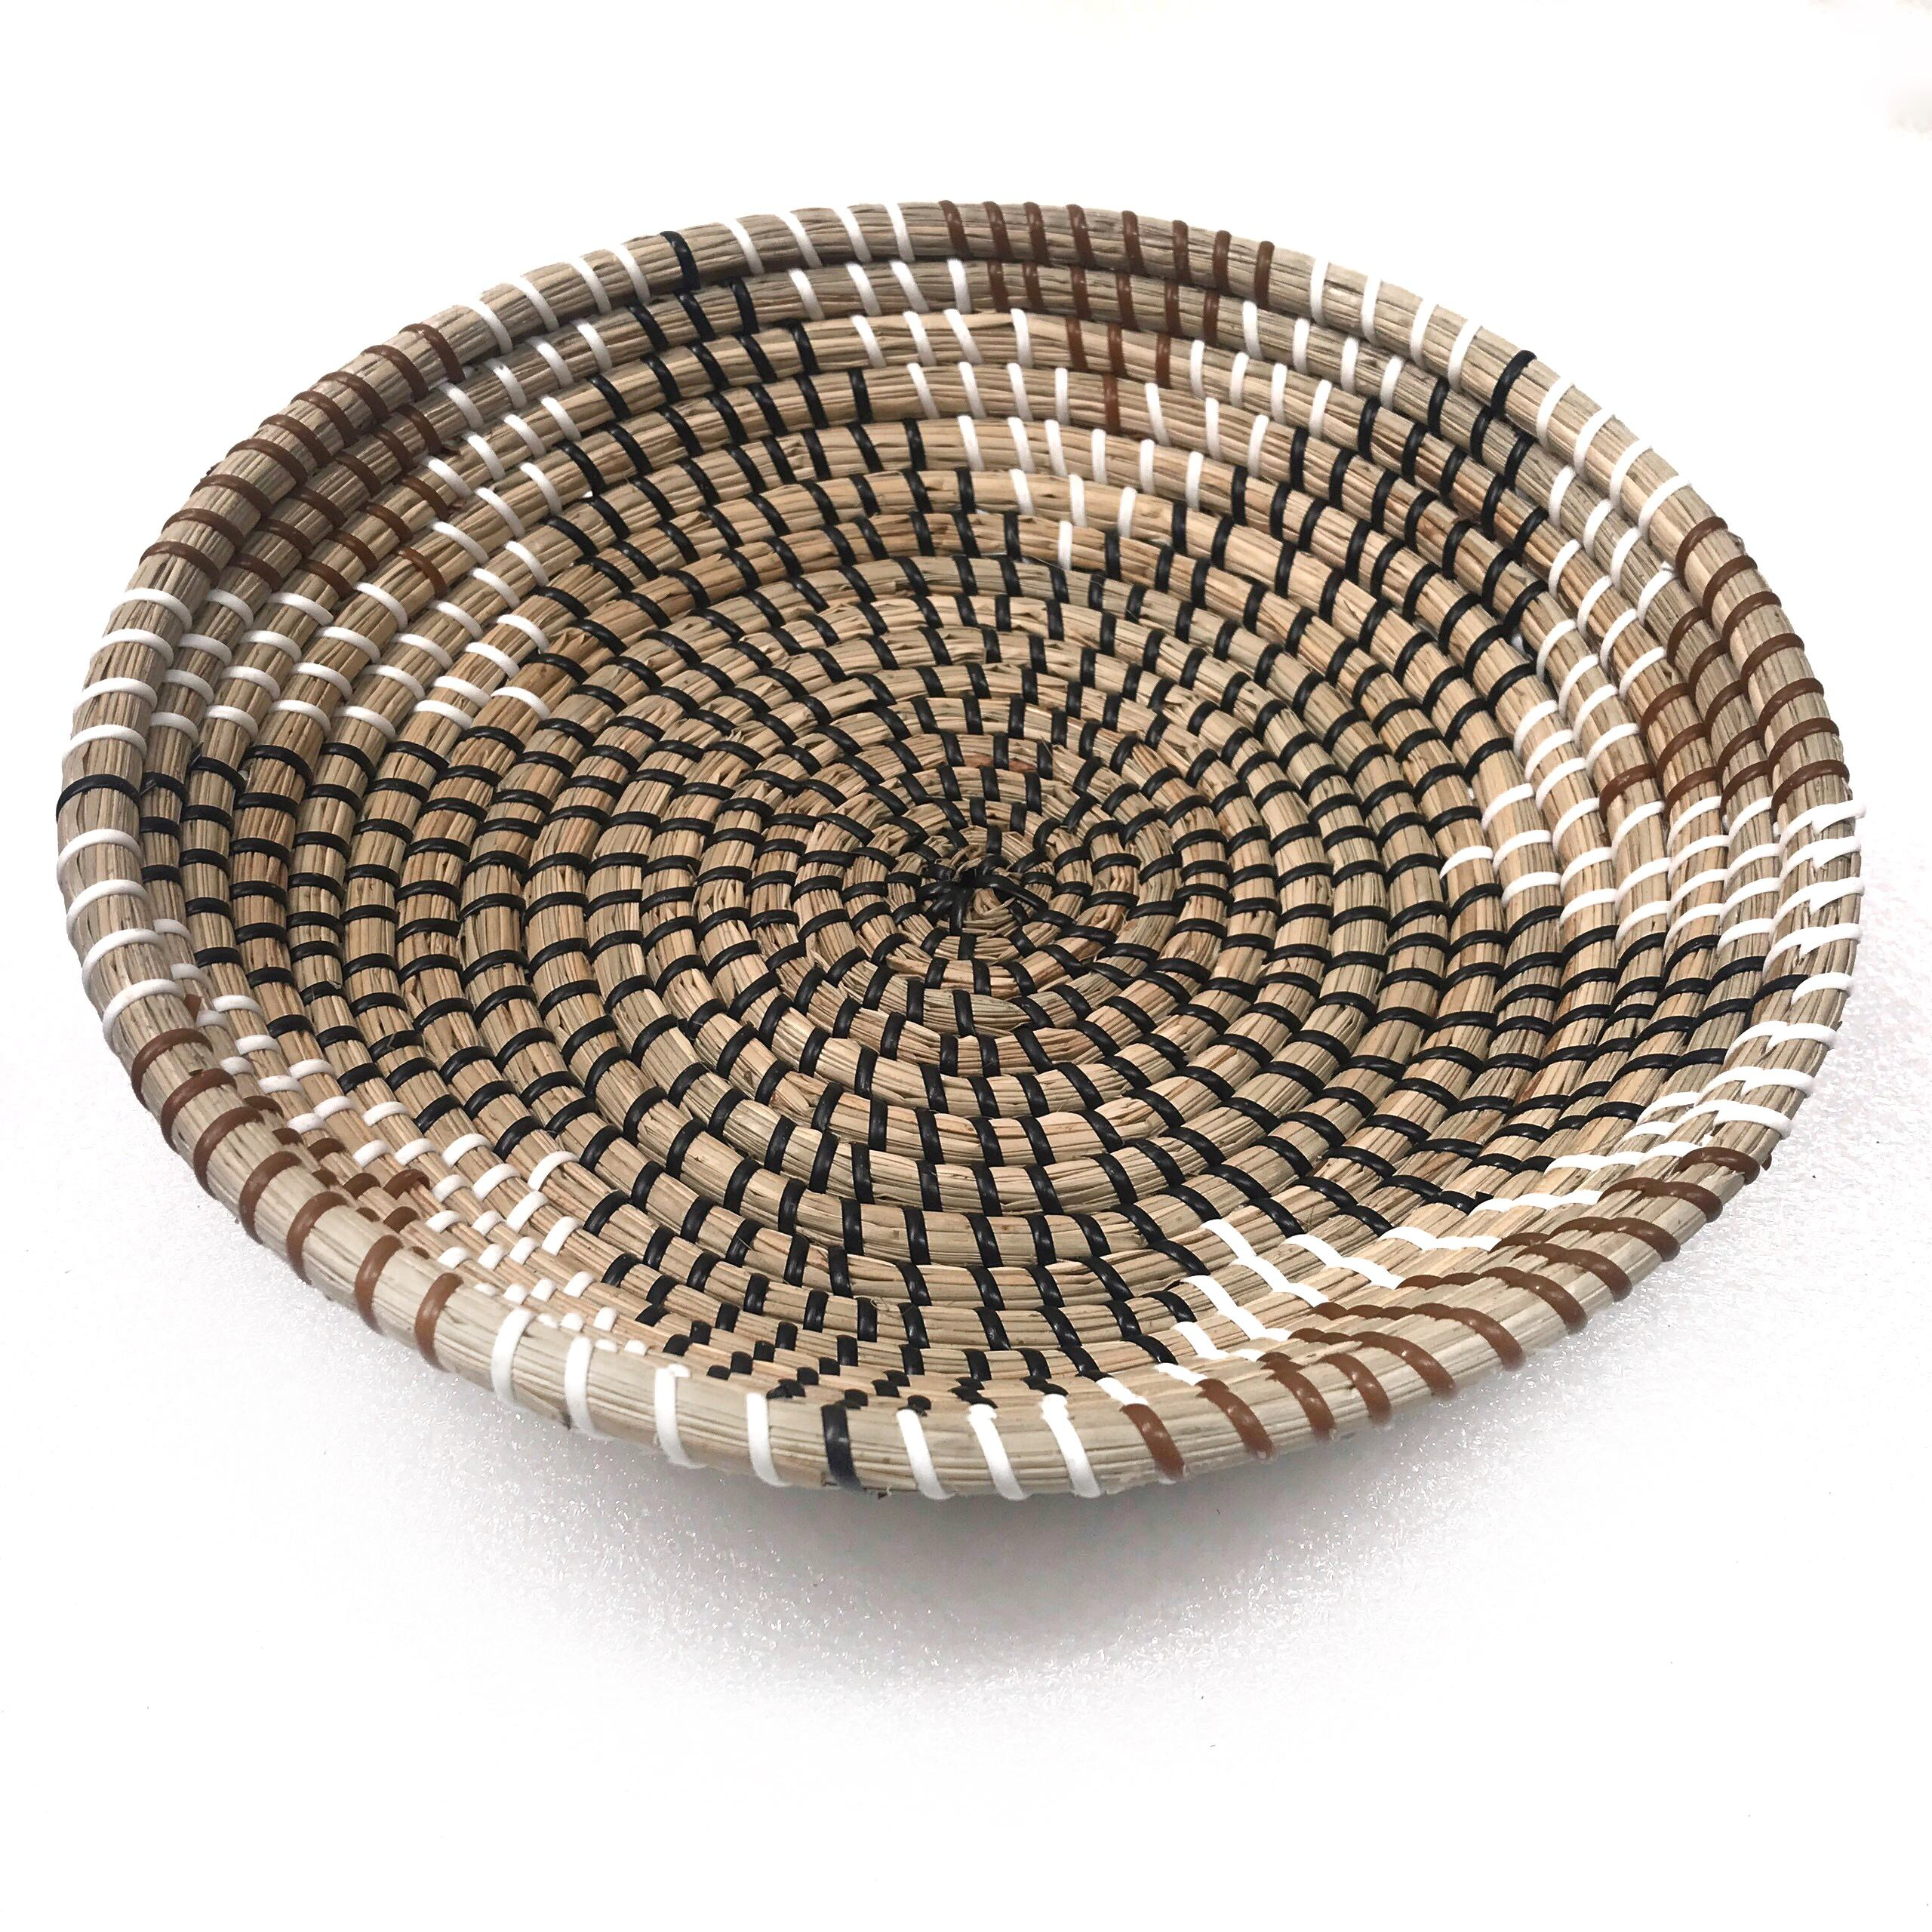 Seagrass Plate With Plastic String Wall Hanging Vintage Home Decoration Buy Seagrass Wall Plate Baseball Home Plate Decorative Grape Plates Product On Alibaba Com